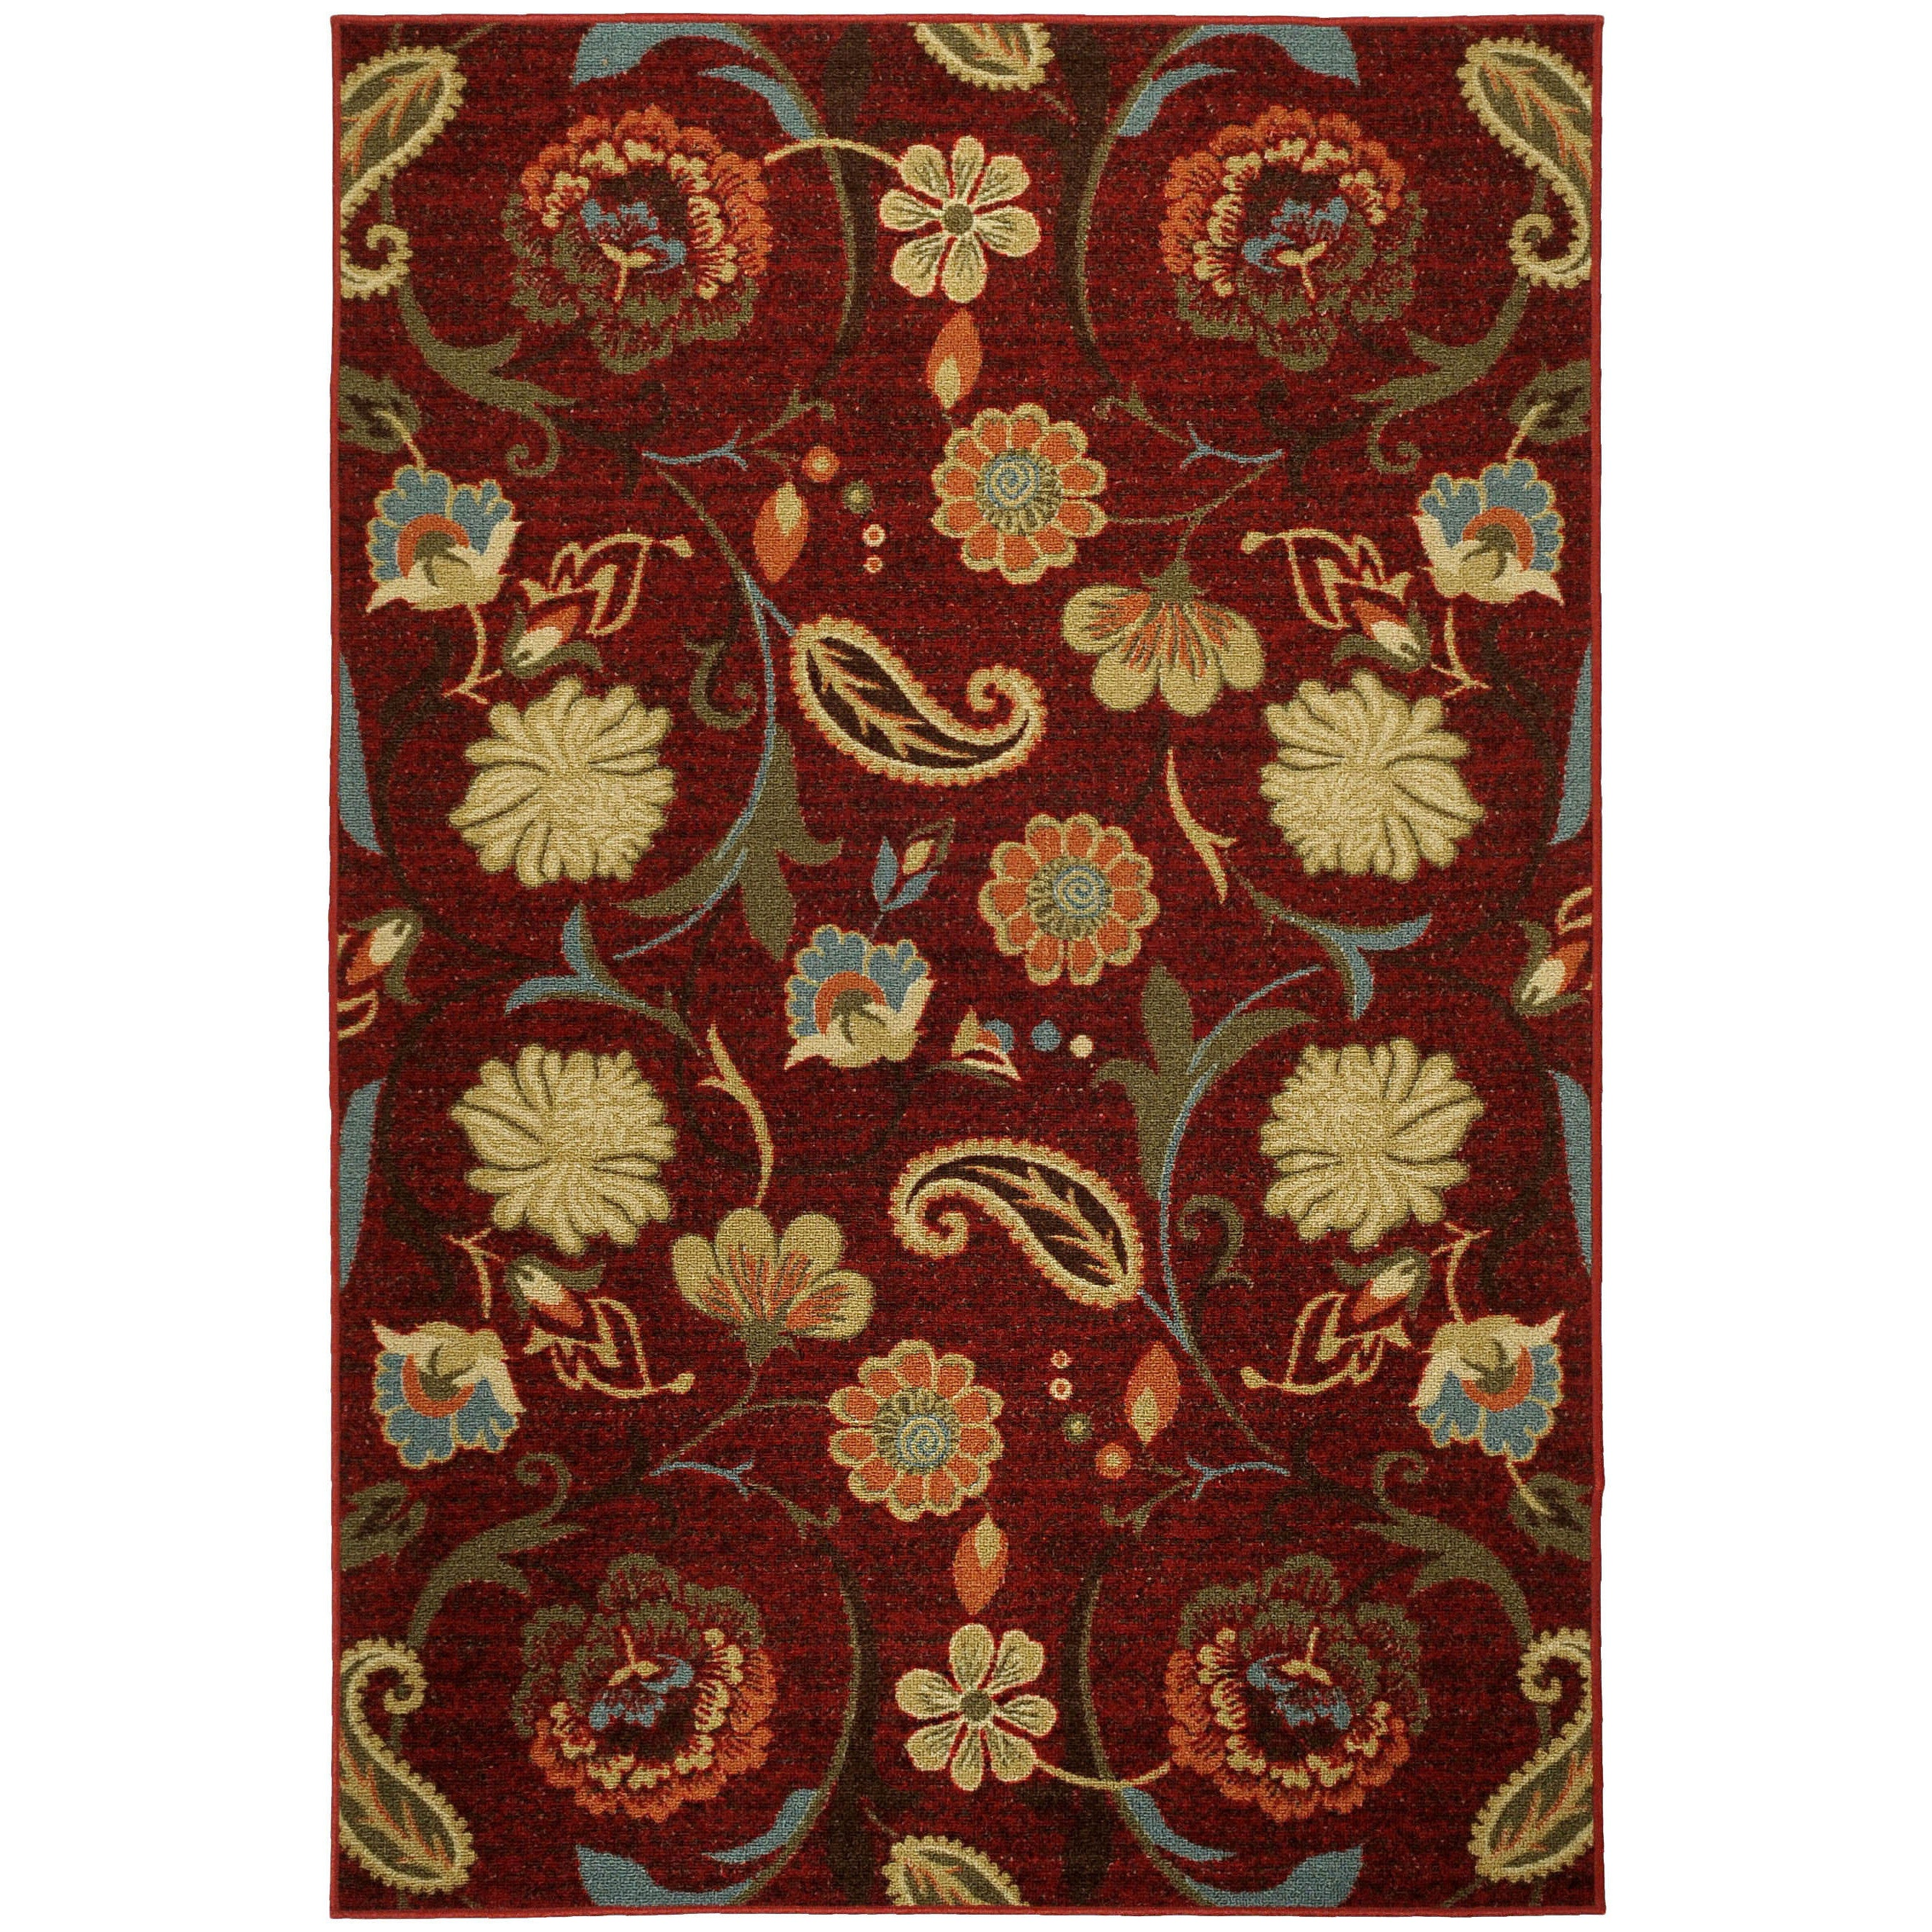 Rubber Back Burgundy Red Multicolor Floral Non-Skid Area Rug (5' x 6'6) at Sears.com